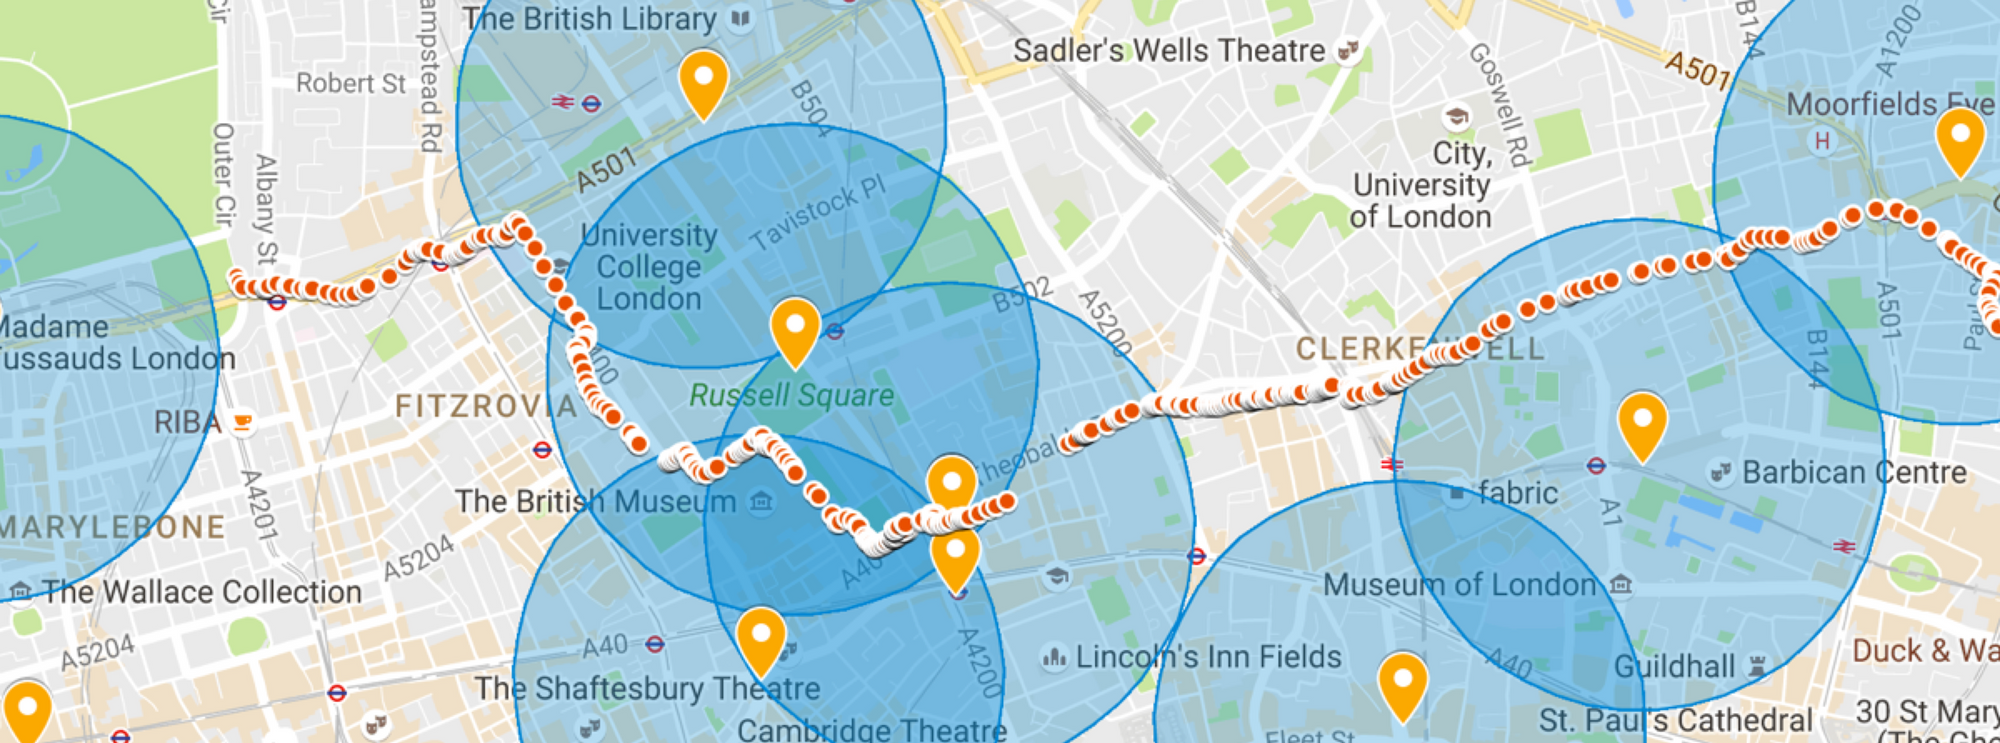 We added the data from a strava route and the London Air sites to see what we could infer